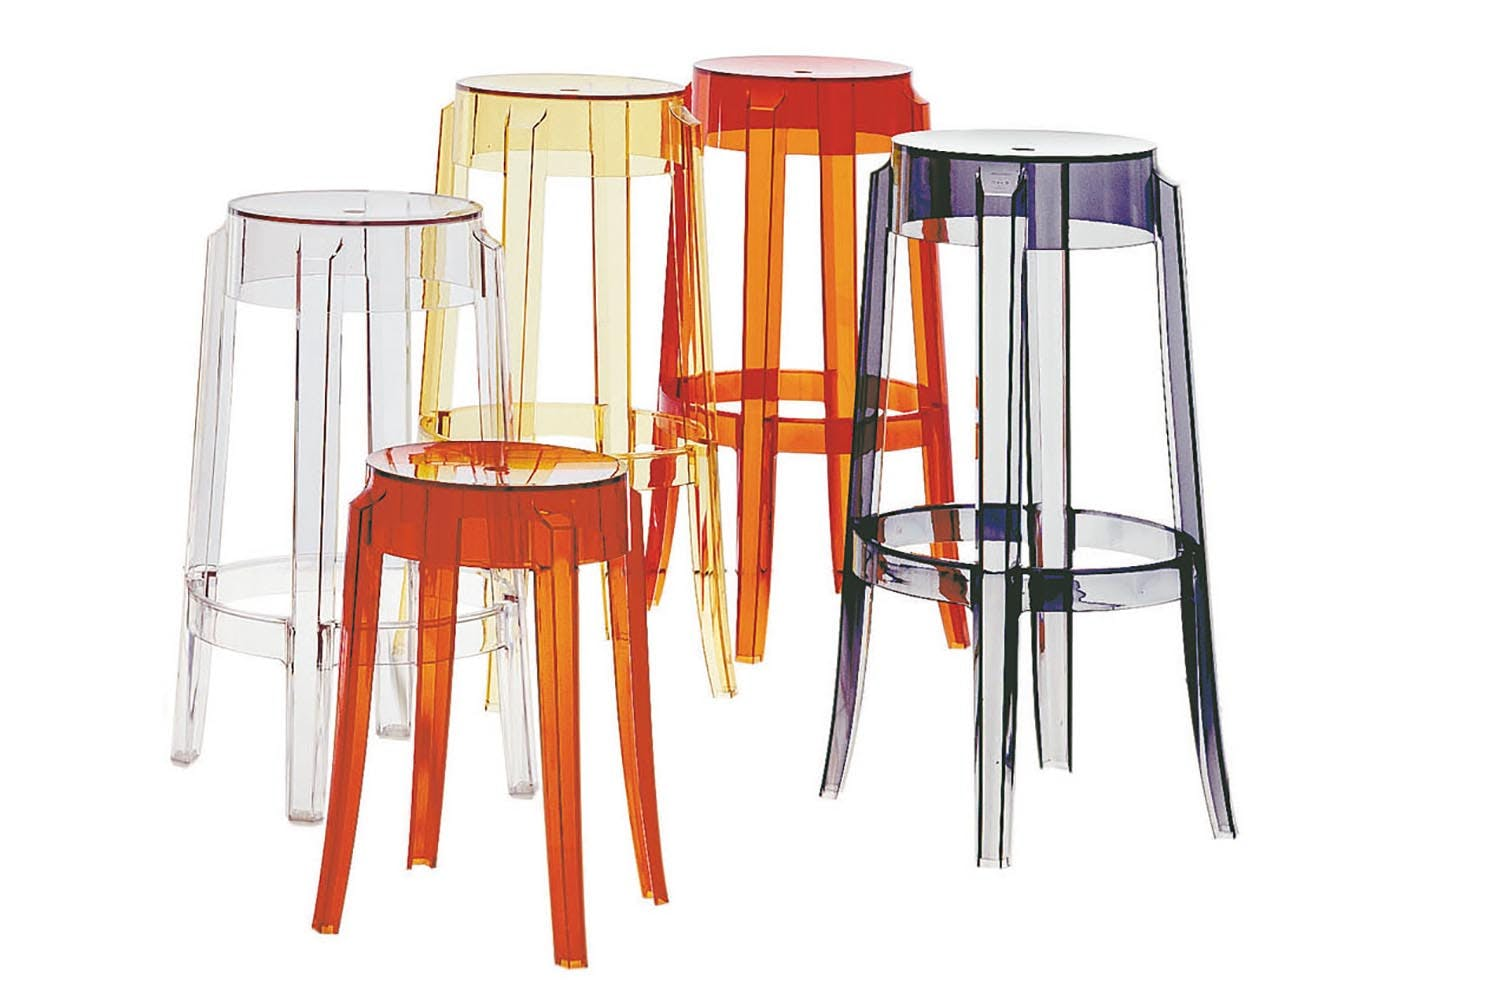 charles ghost low stool by philippe starck for kartell  space  - share